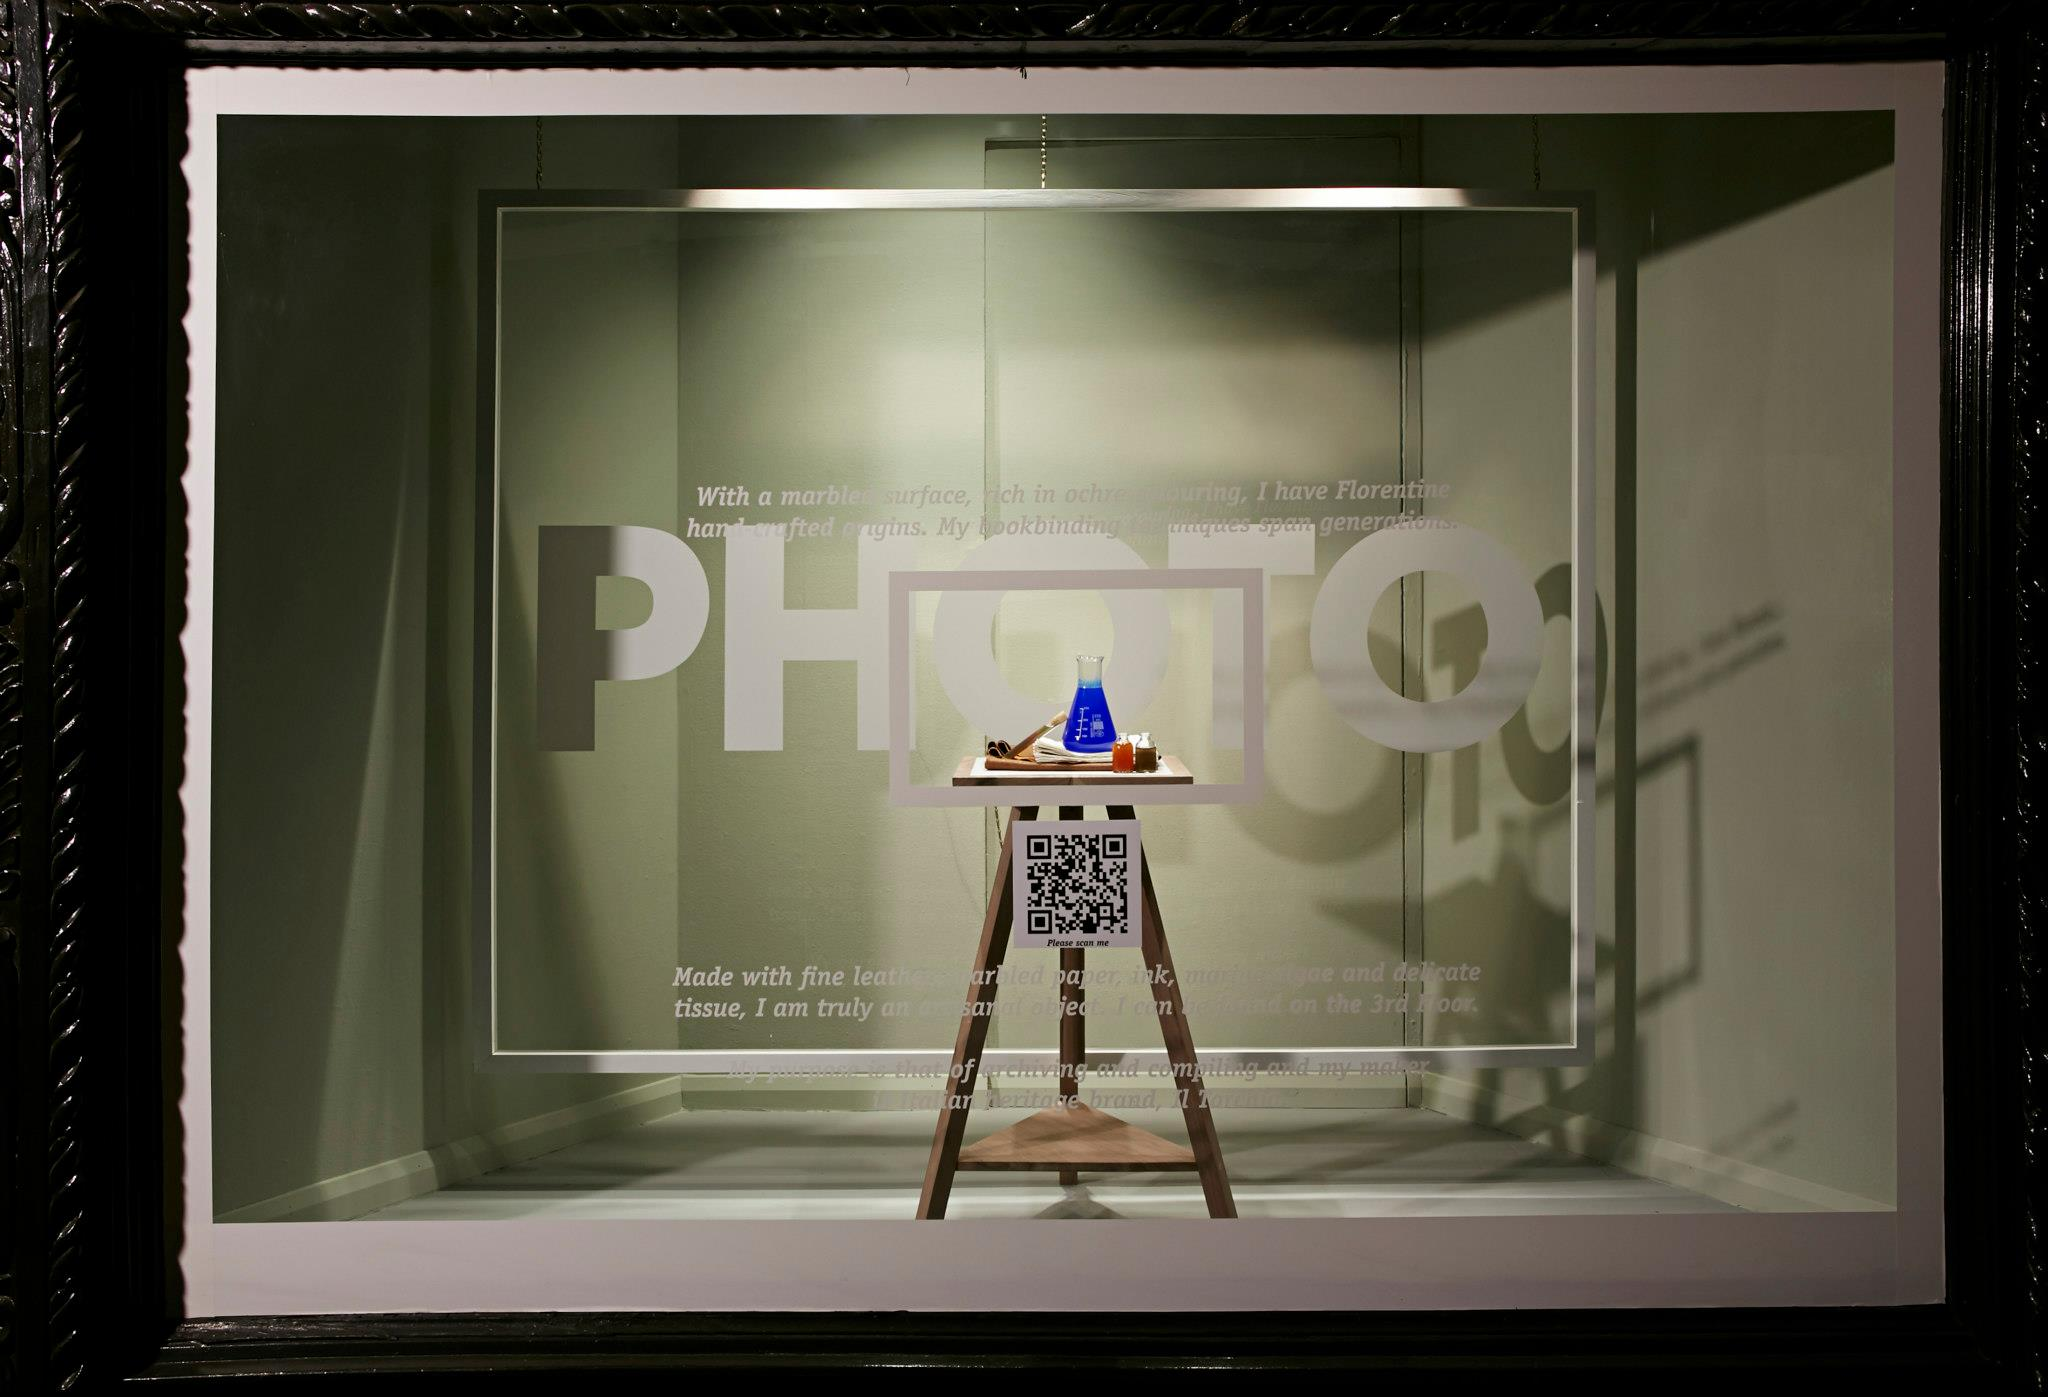 Interactive 39 scan to see 39 window display at liberty london for Show window designs